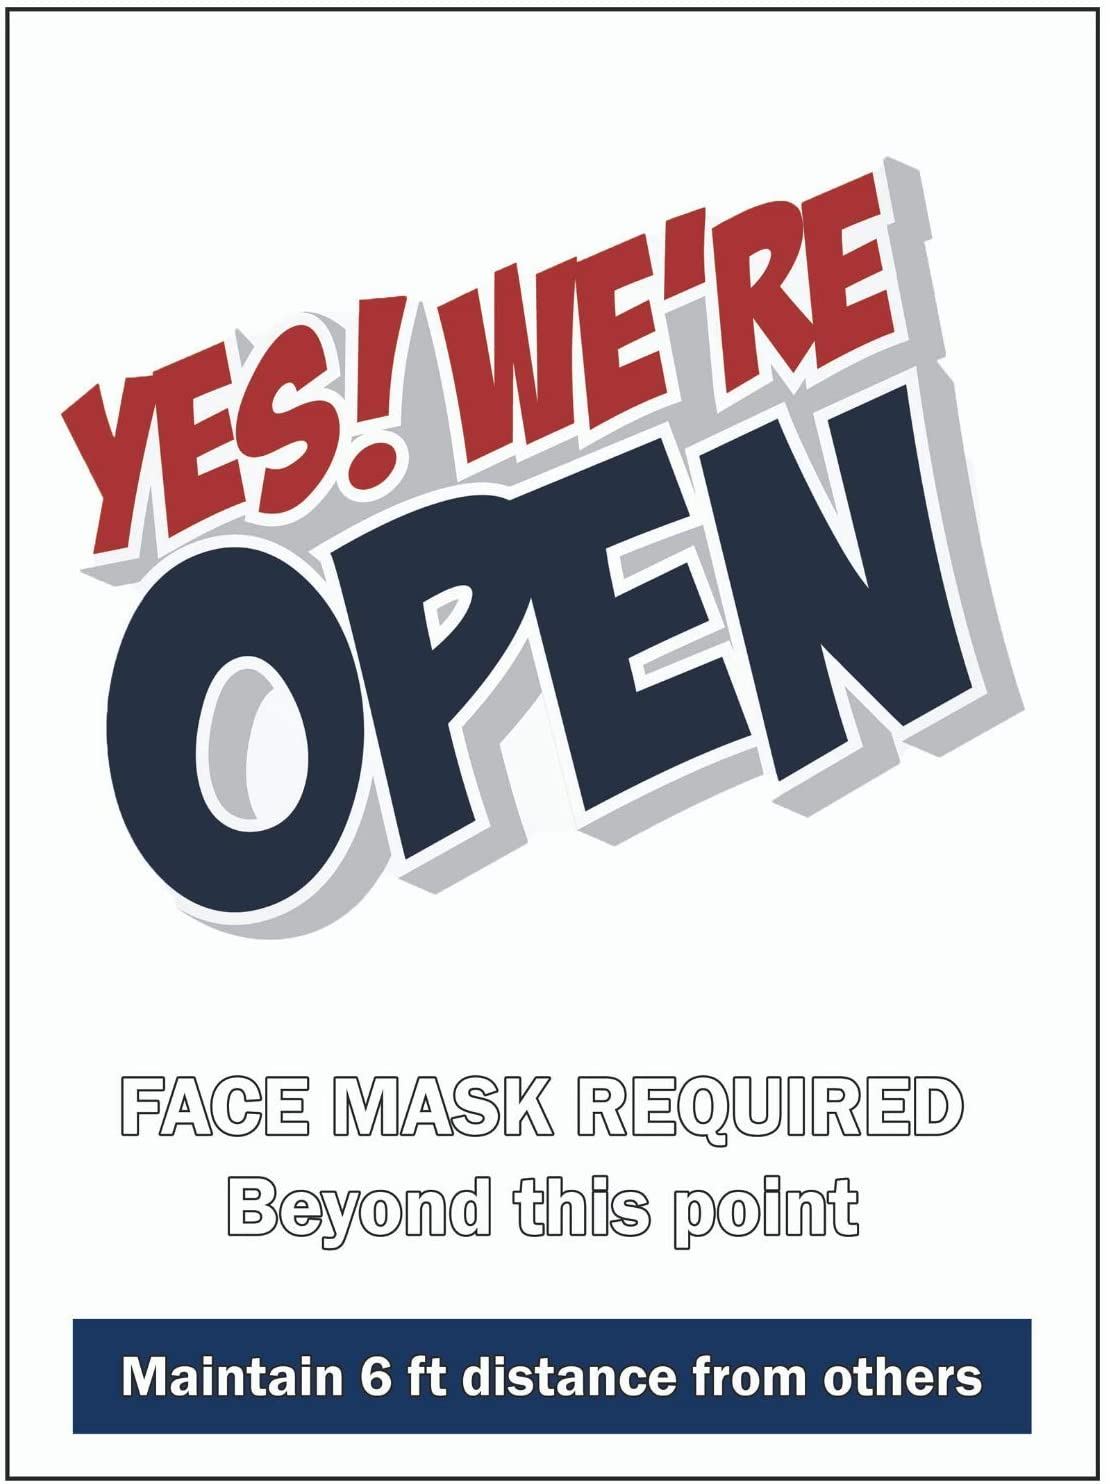 We're Open Sign – 8 Mil Static Cling Sign 9x12 Inches Yes We 're Open Door Sign with Face Mask Required 6ft Distance for Restaurant Grocery Store Coffee Shop Business